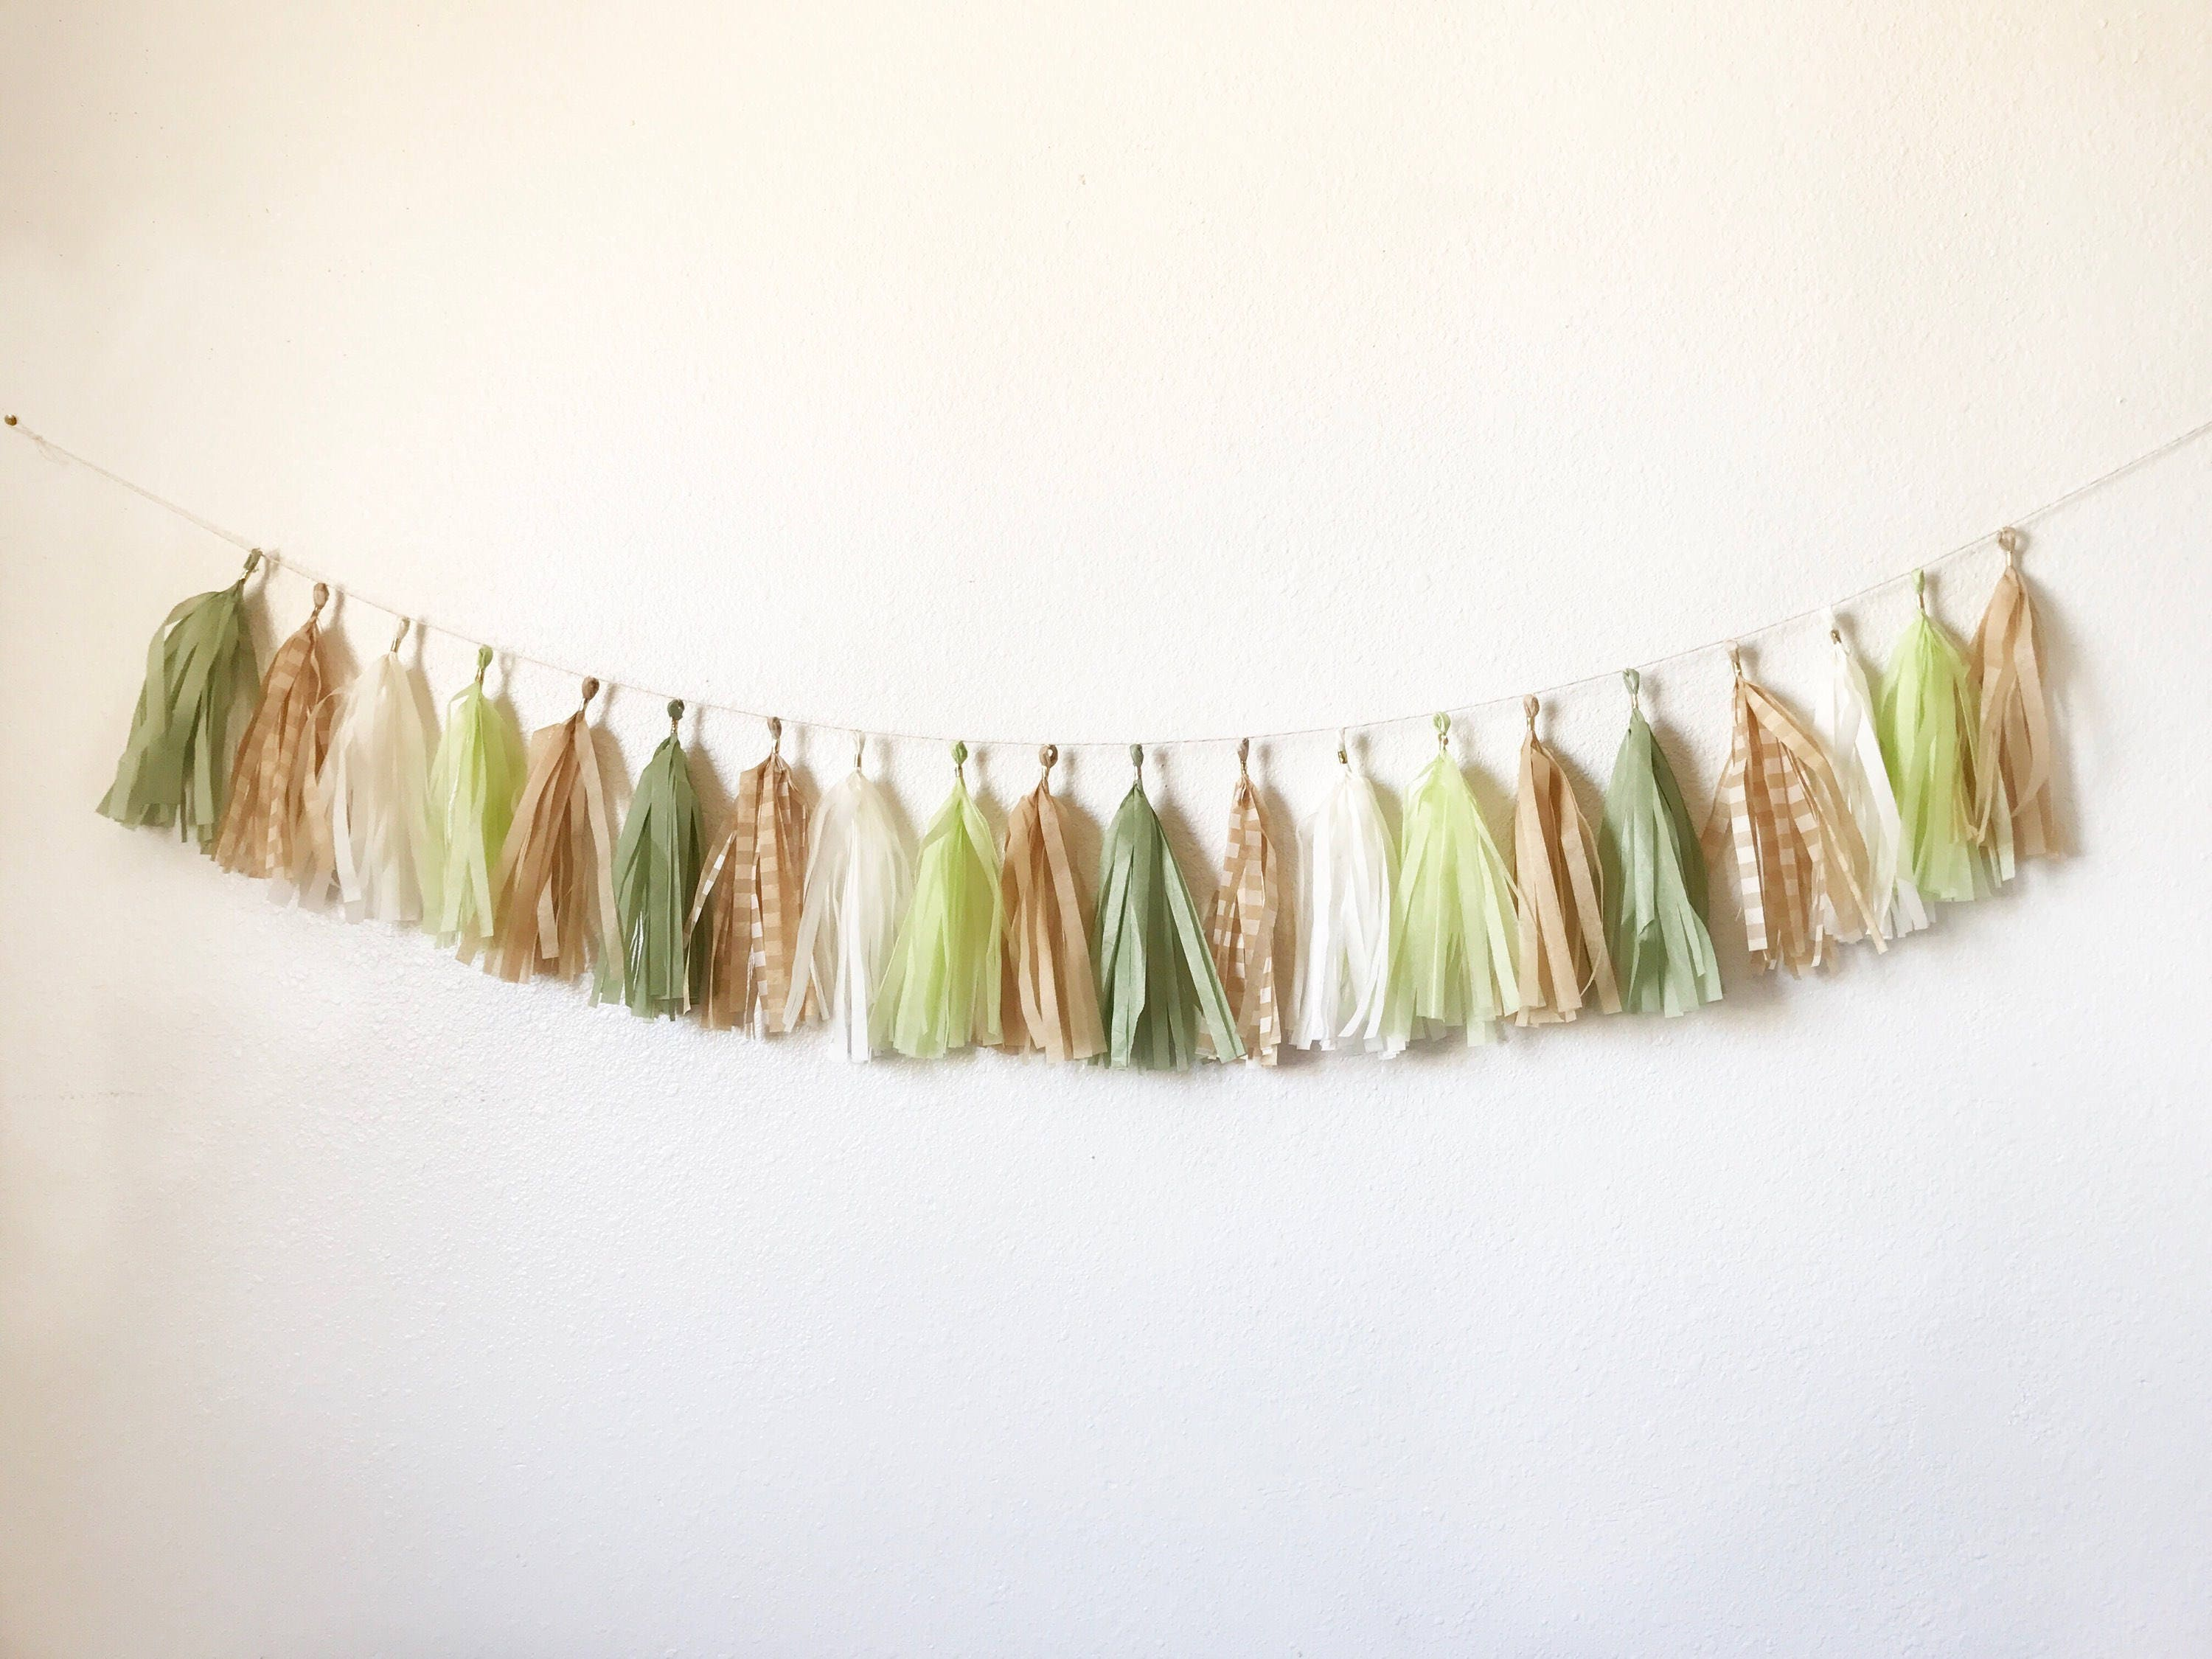 Boho Tassel Garland Cheaper Than Retail Price Buy Clothing Accessories And Lifestyle Products For Women Men